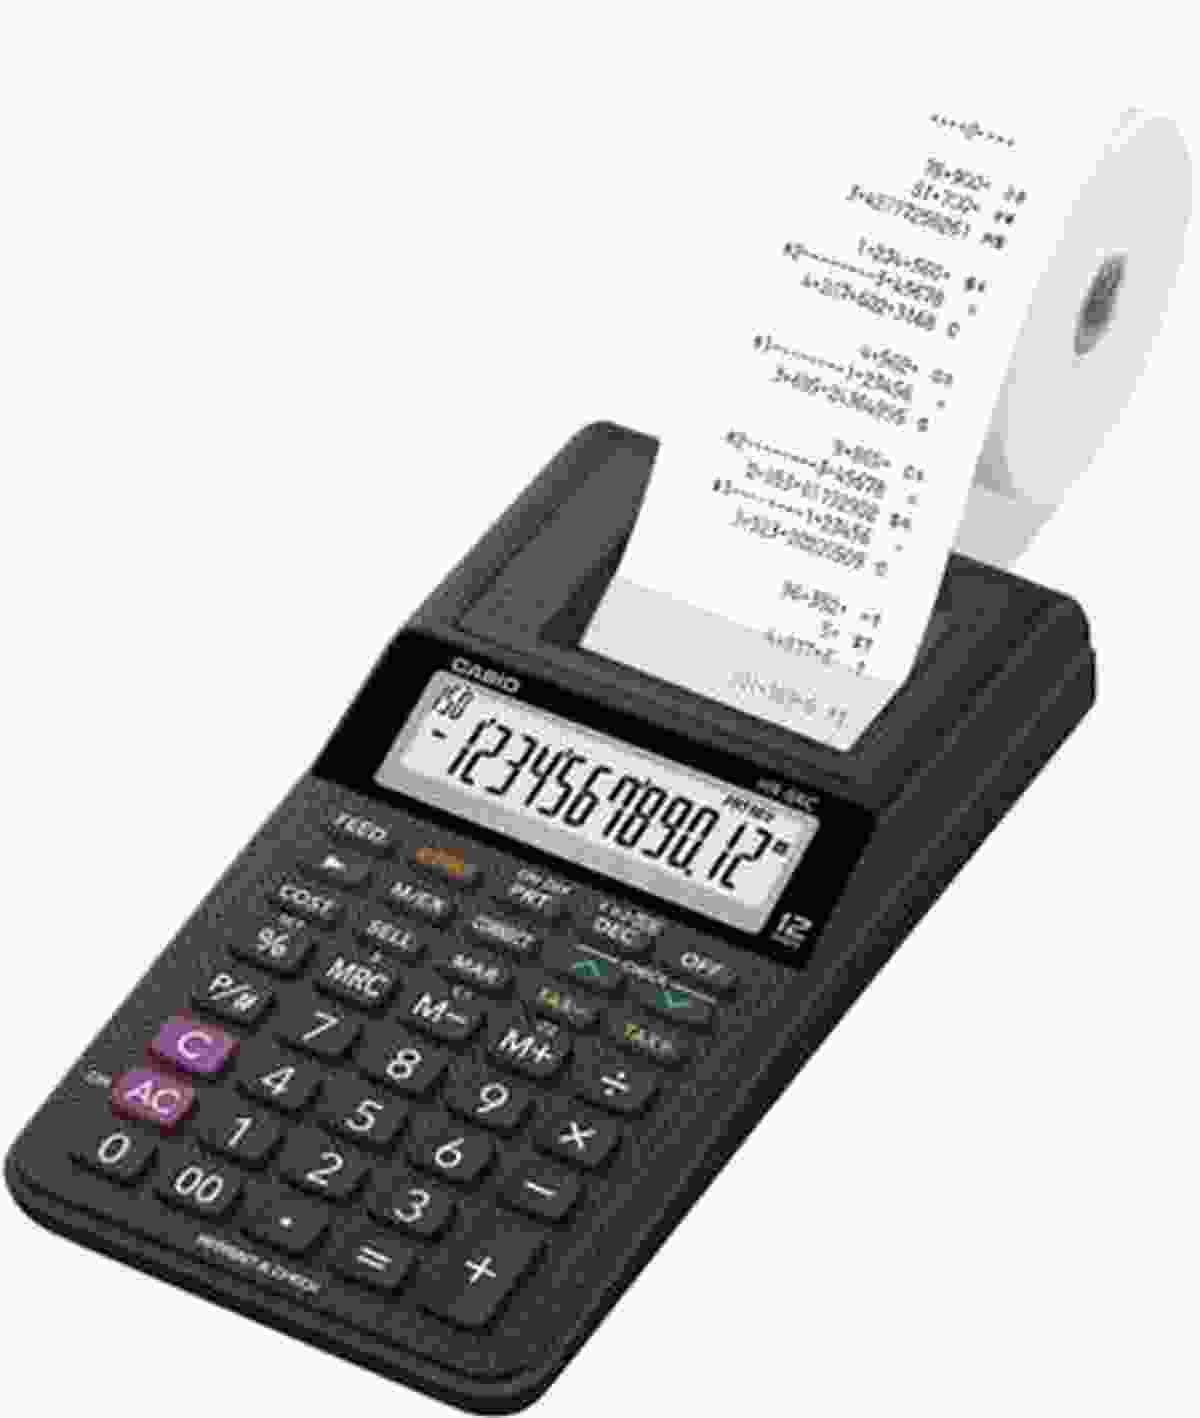 Casio HR-8RC-BK Handheld Printing Calculator